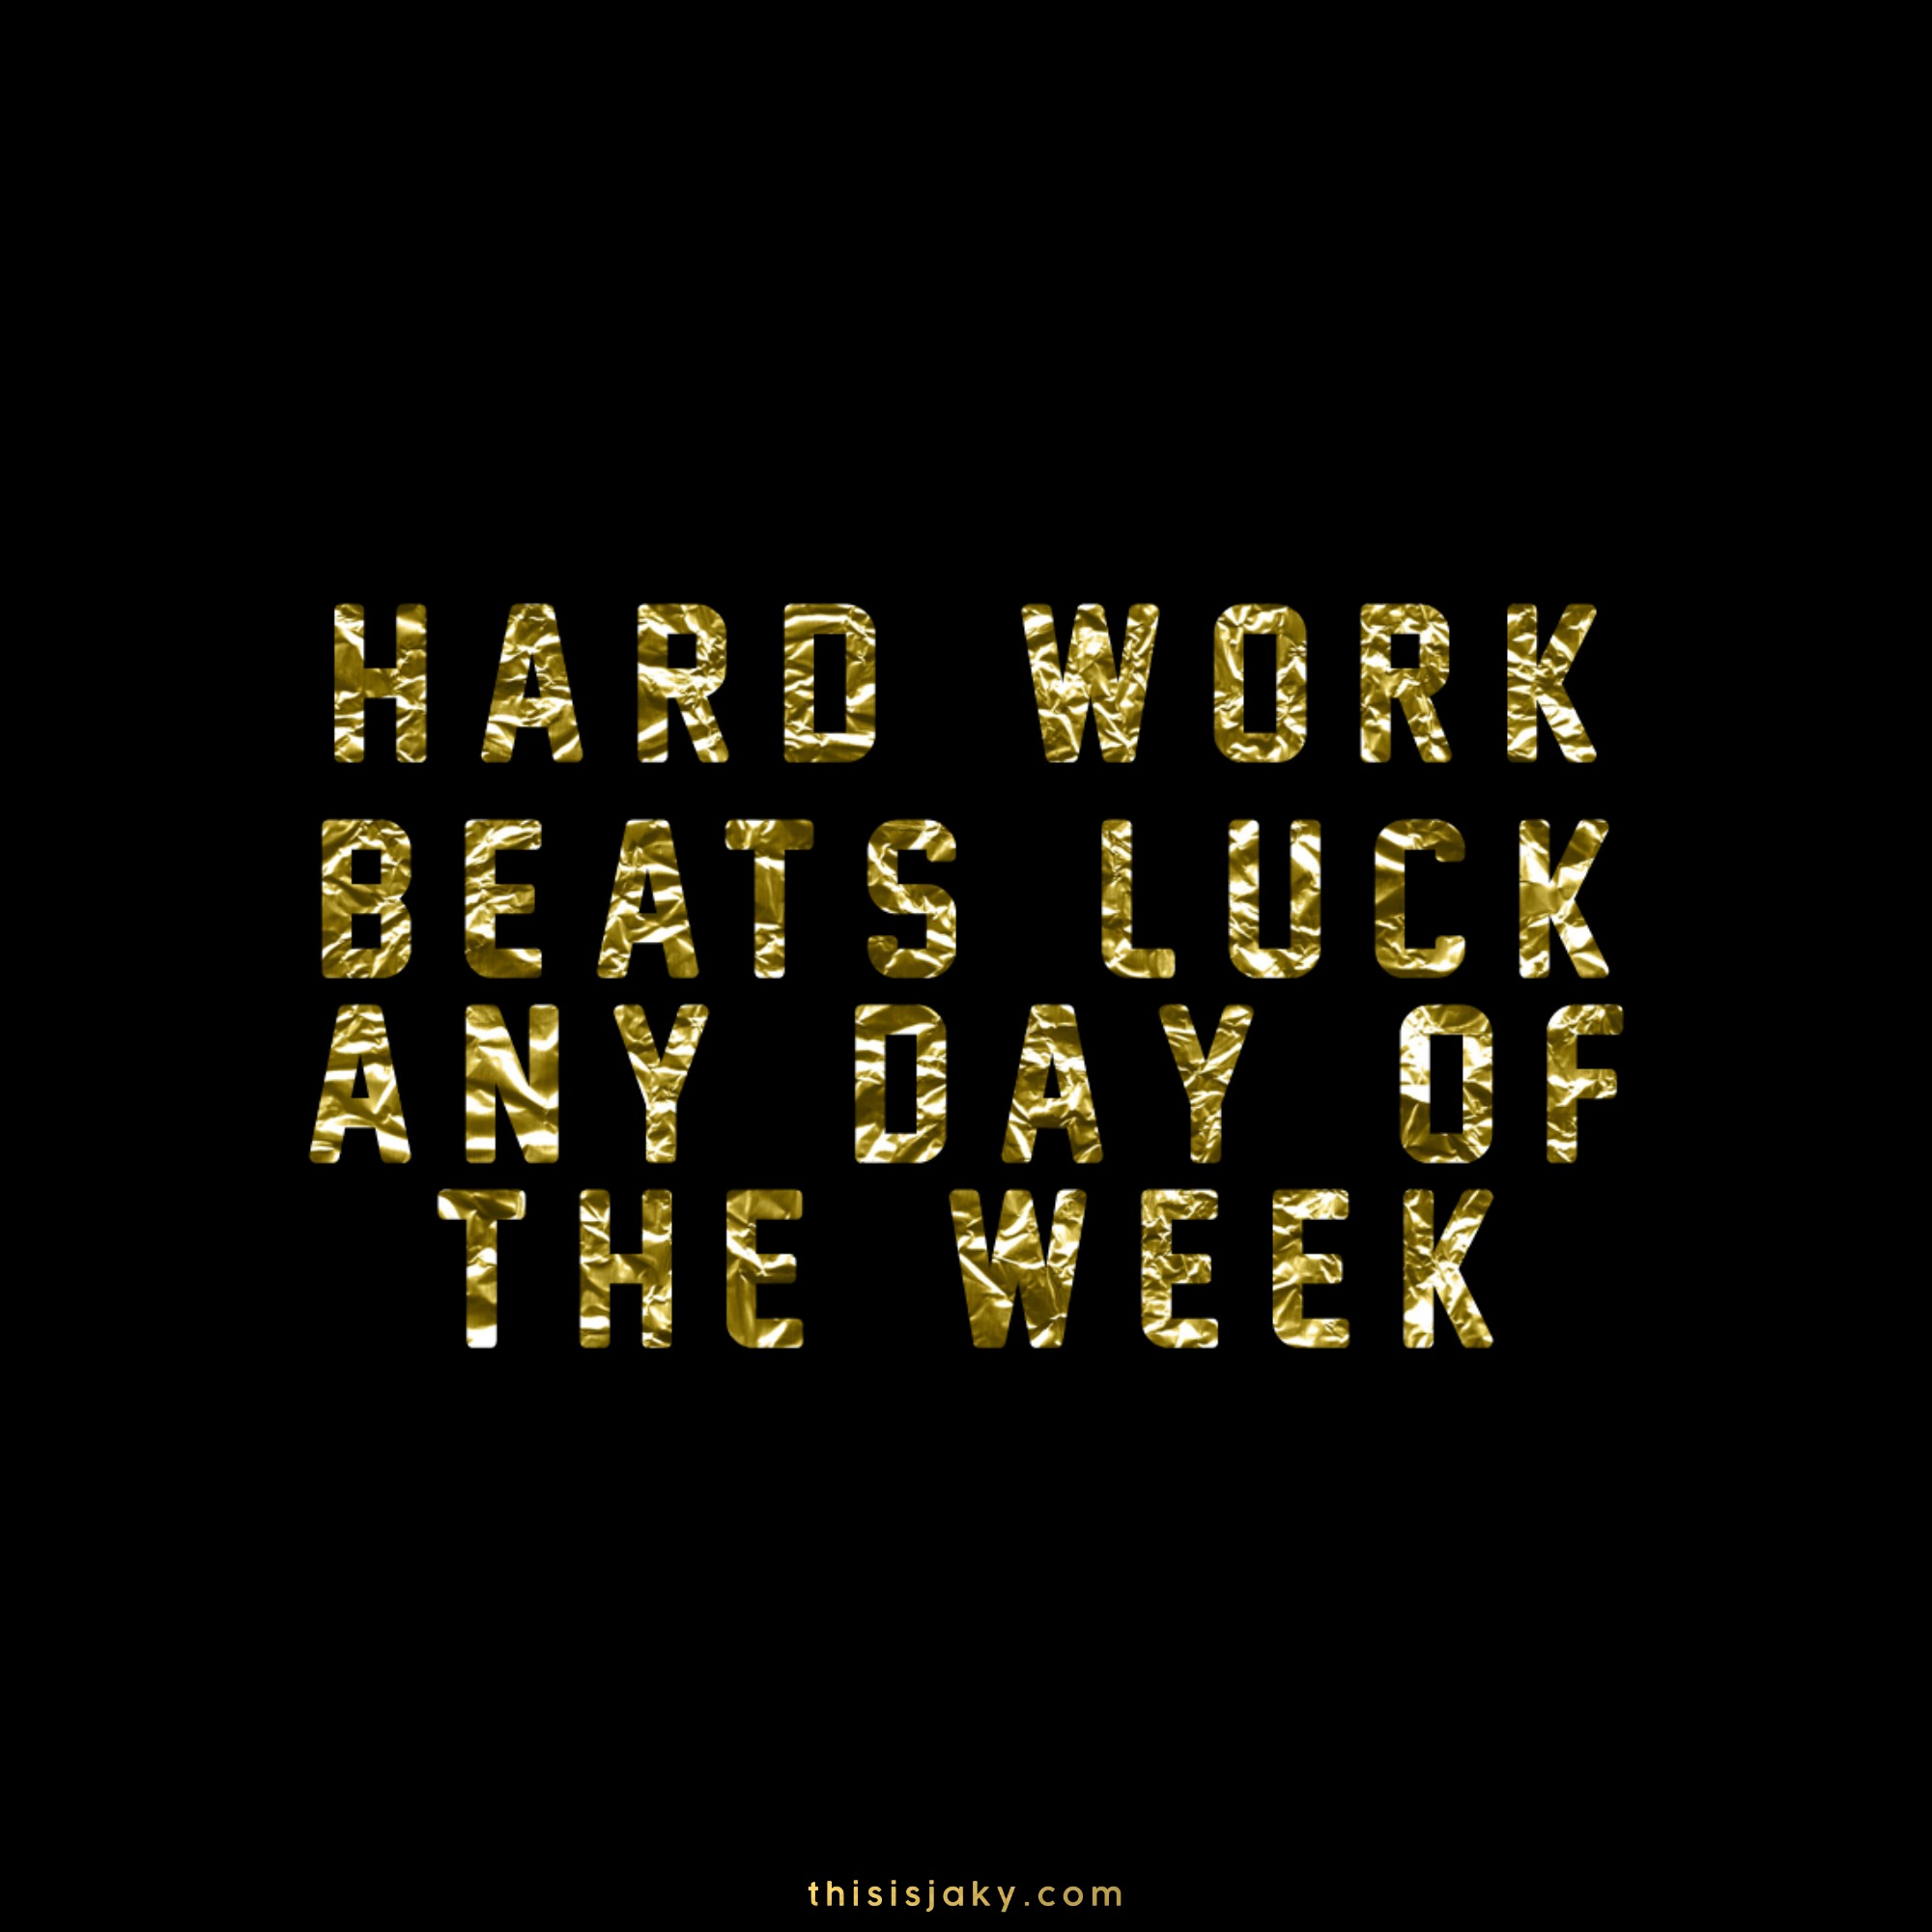 hard work beats luck .jpg